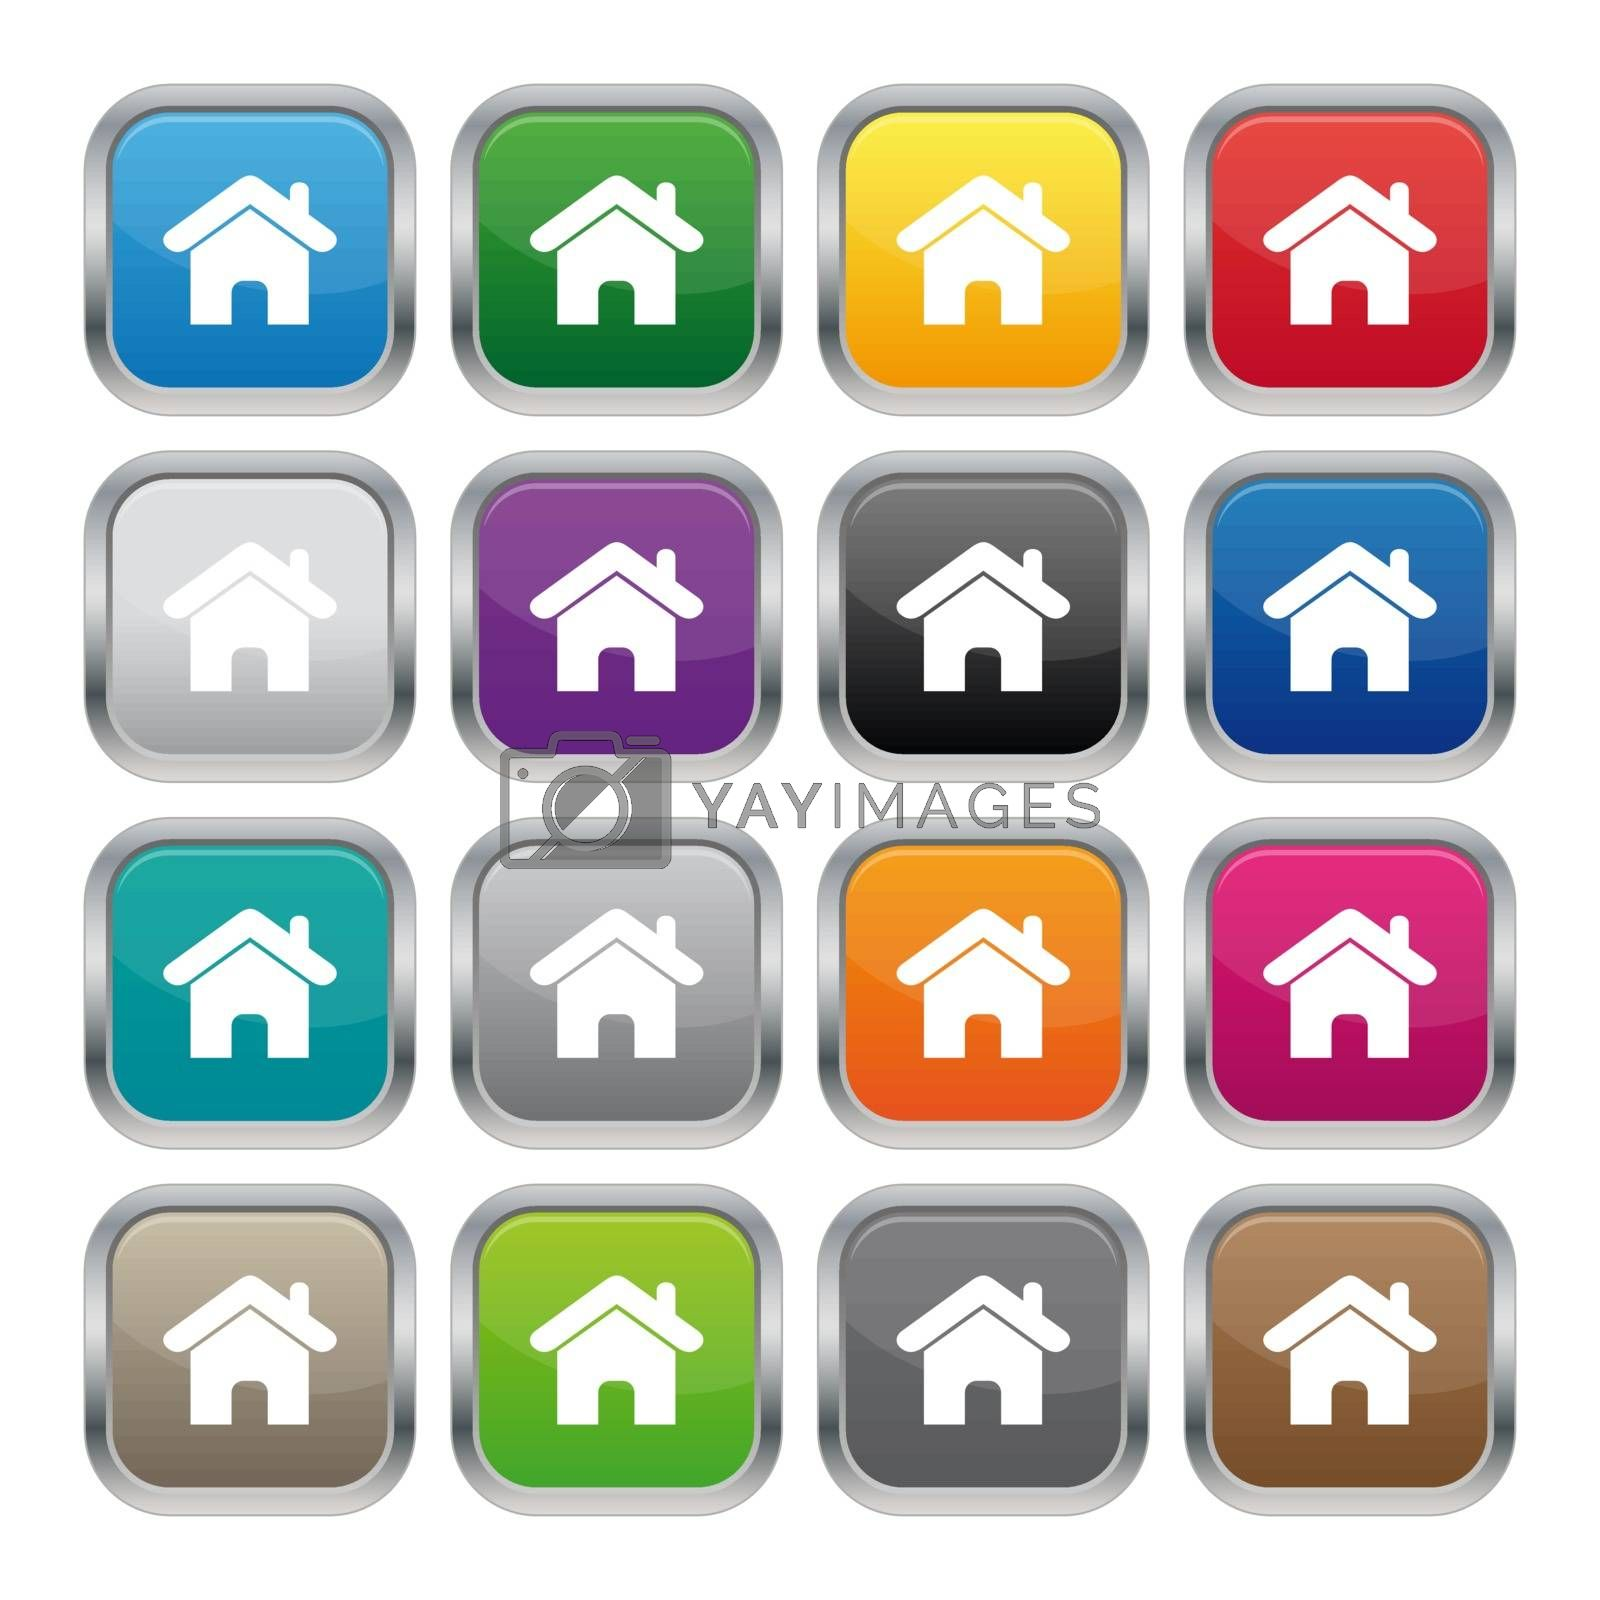 Royalty free image of Home metallic square buttons by simo988